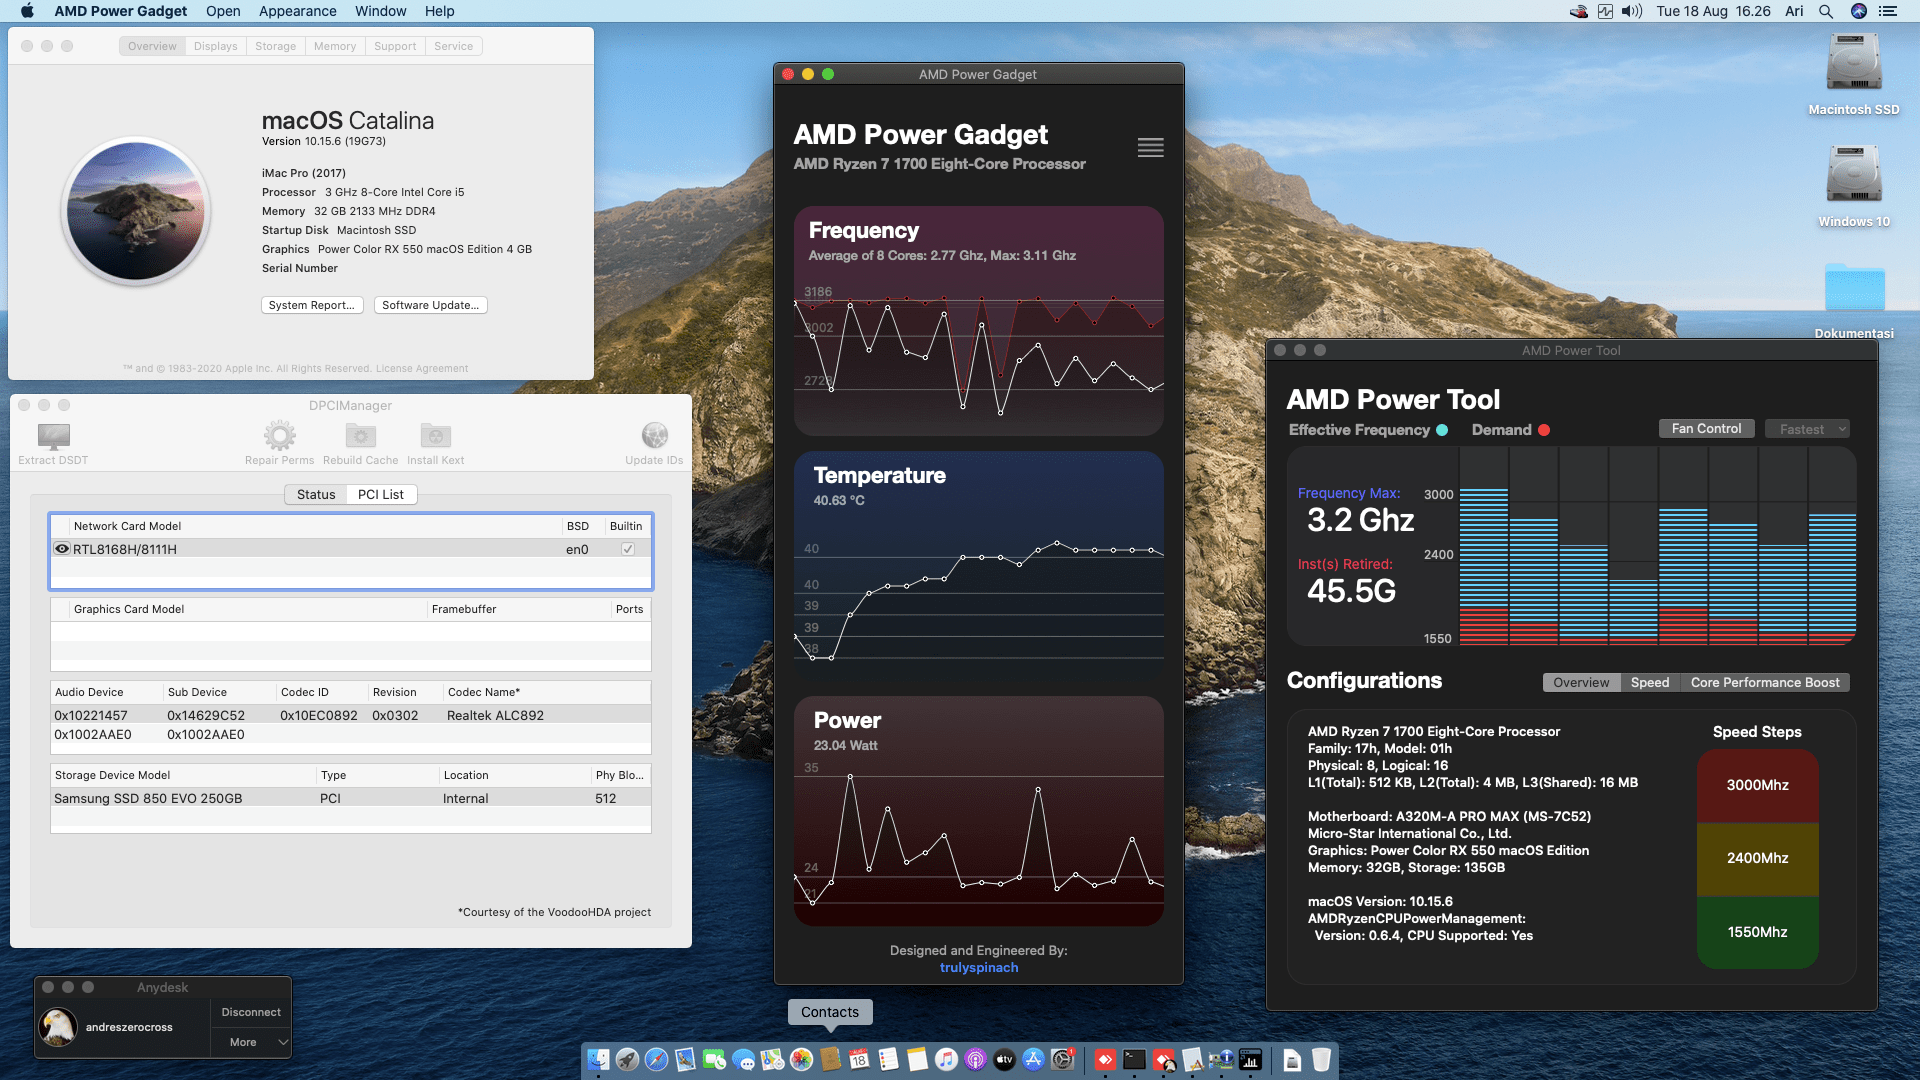 Success Hackintosh macOS Catalina 10.15.6 Build 19G73 in MSI A320M-A Pro Max + AMD Ryzen 7 1700 + Power Color RX 550